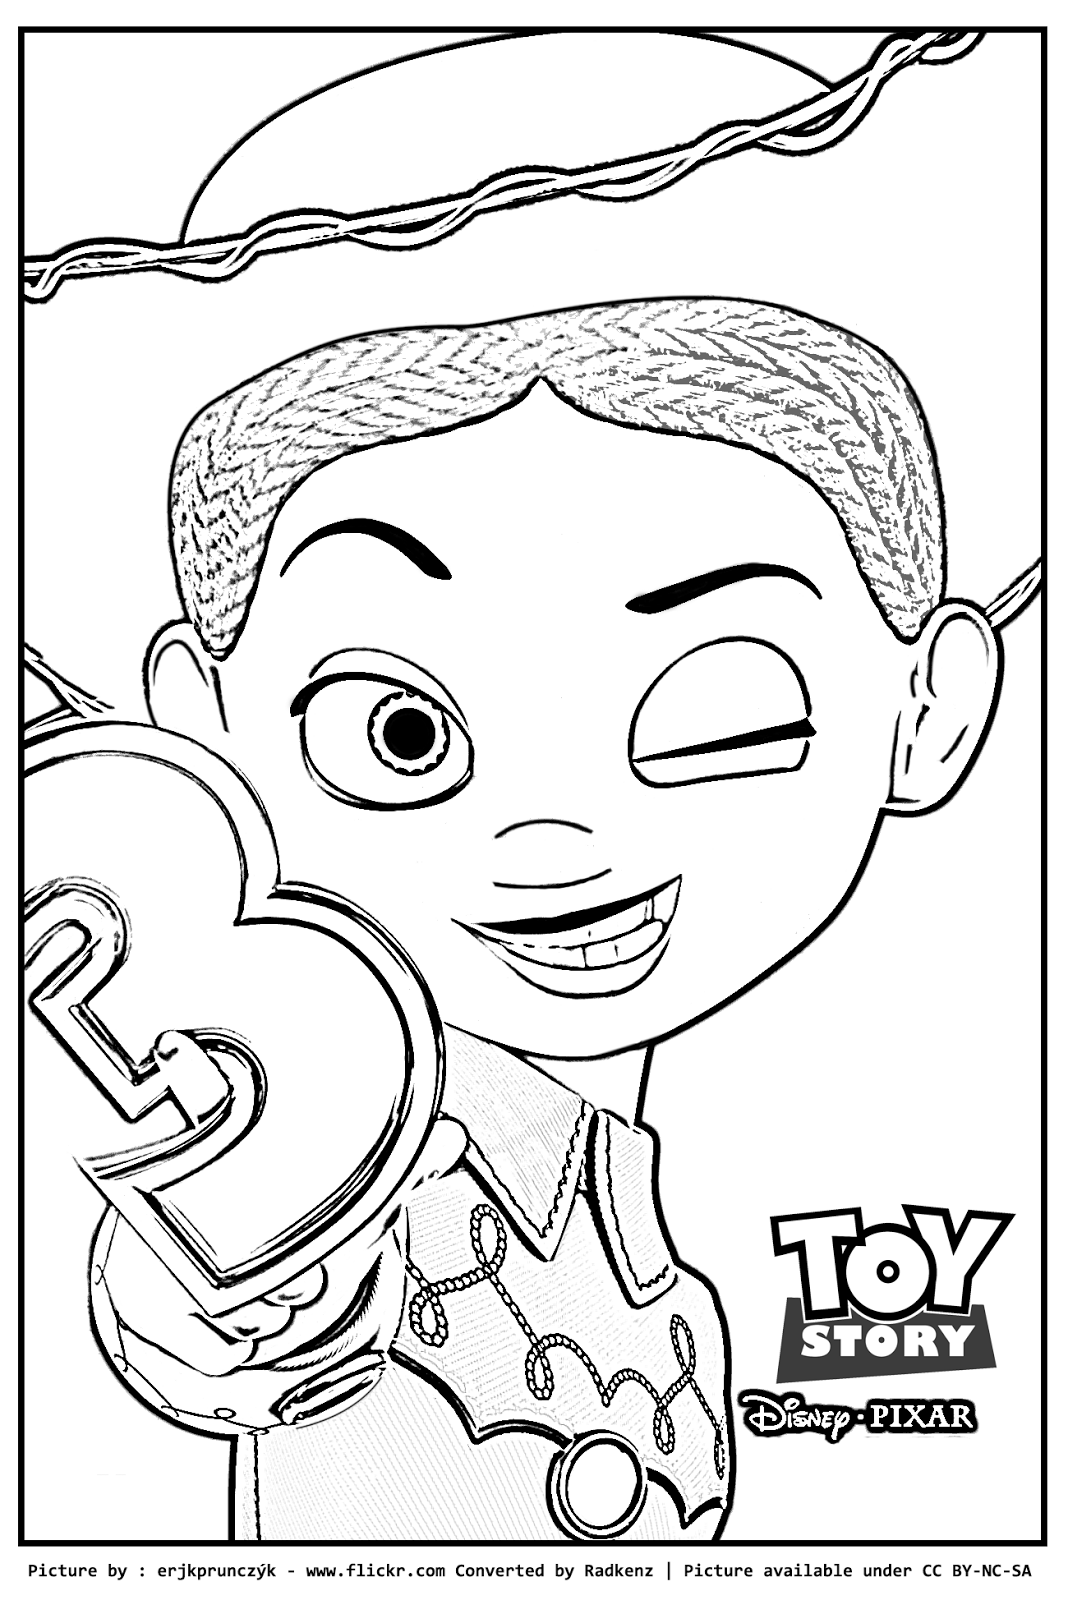 Coloring pages toy story - Toy Story Jessie Waving Coloring Page Kids Pages 510x648 Radkenz